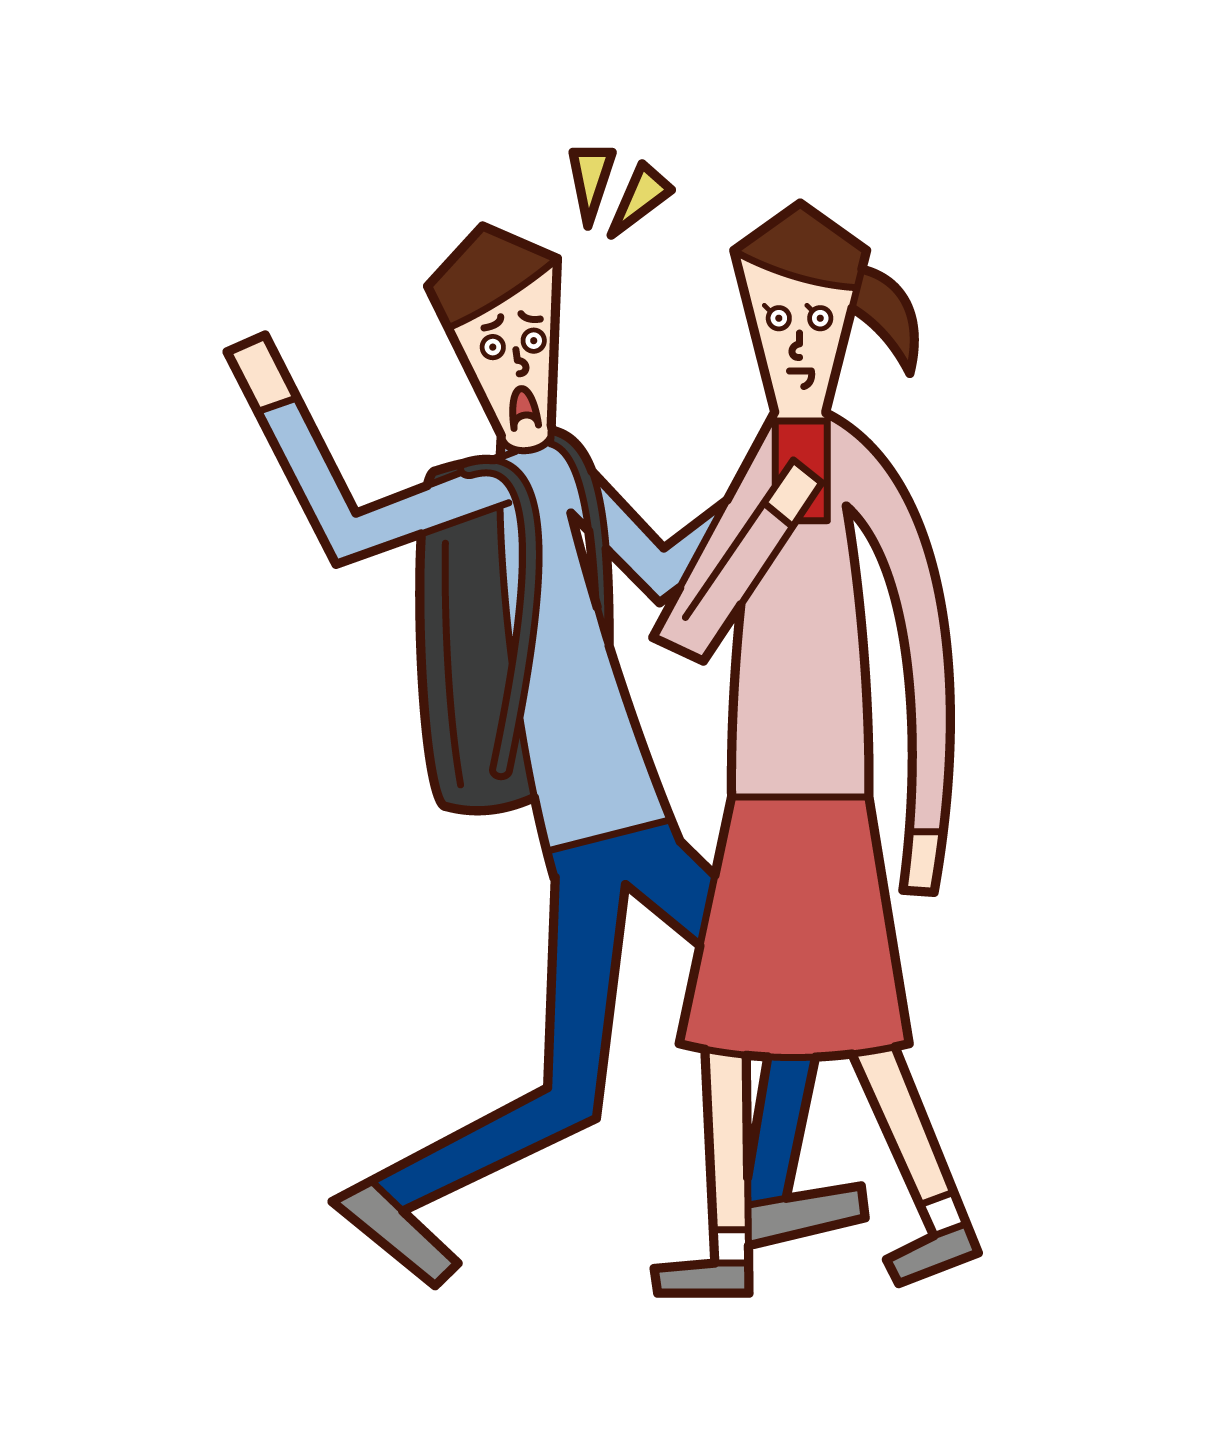 Illustration of a person who operates a smartphone while walking, a walking smartphone (woman)